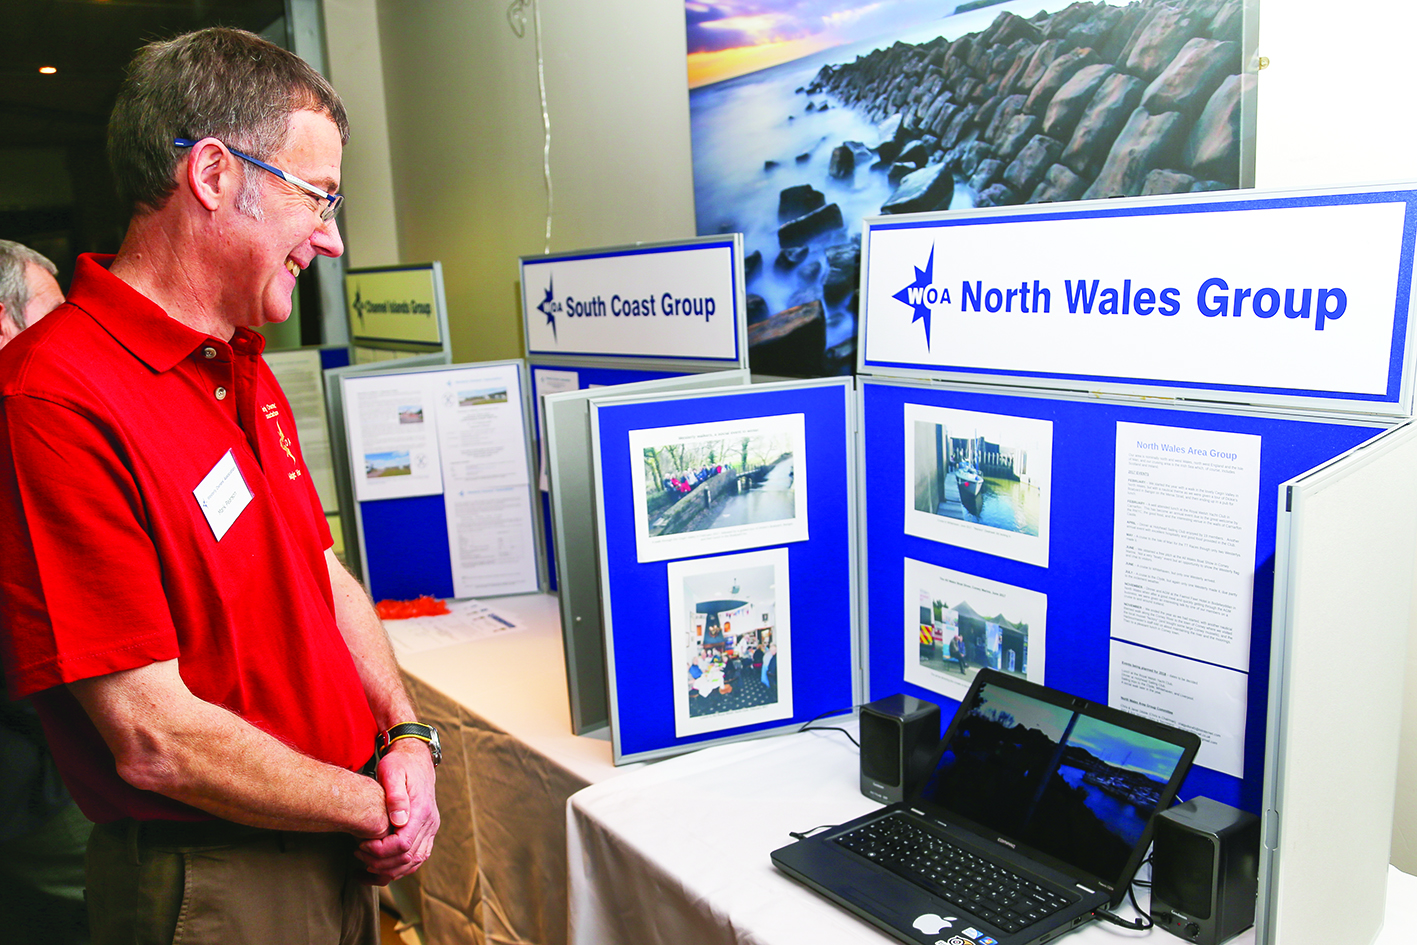 WOA North Wales Group stand